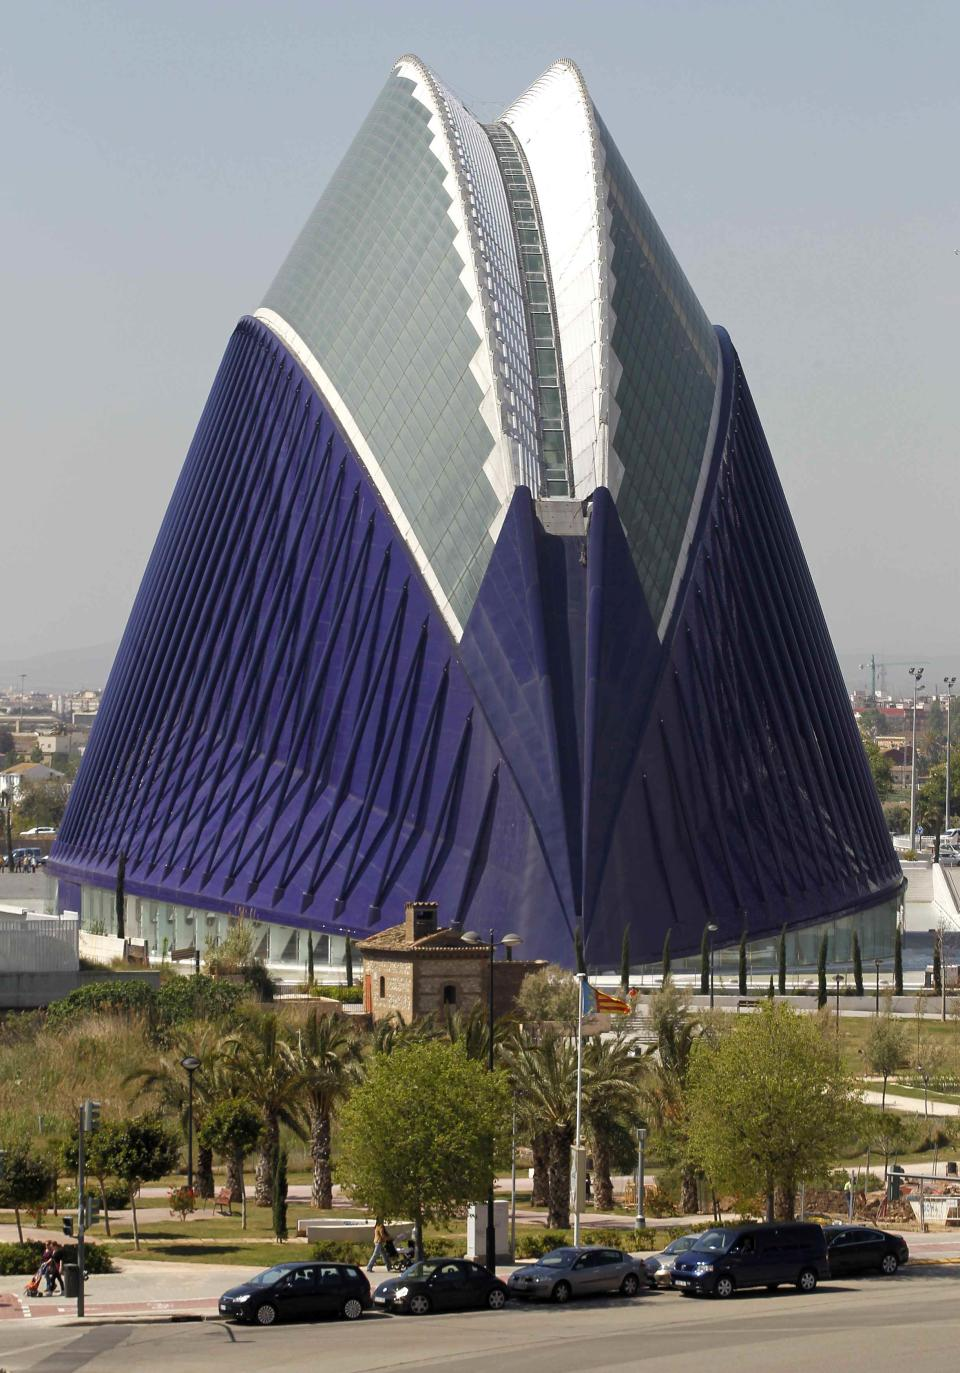 The Agora building at the City of Arts and Sciences. The building's cost escalated up to 86 million euros, according to local media. (REUTERS/Heino Kalis)